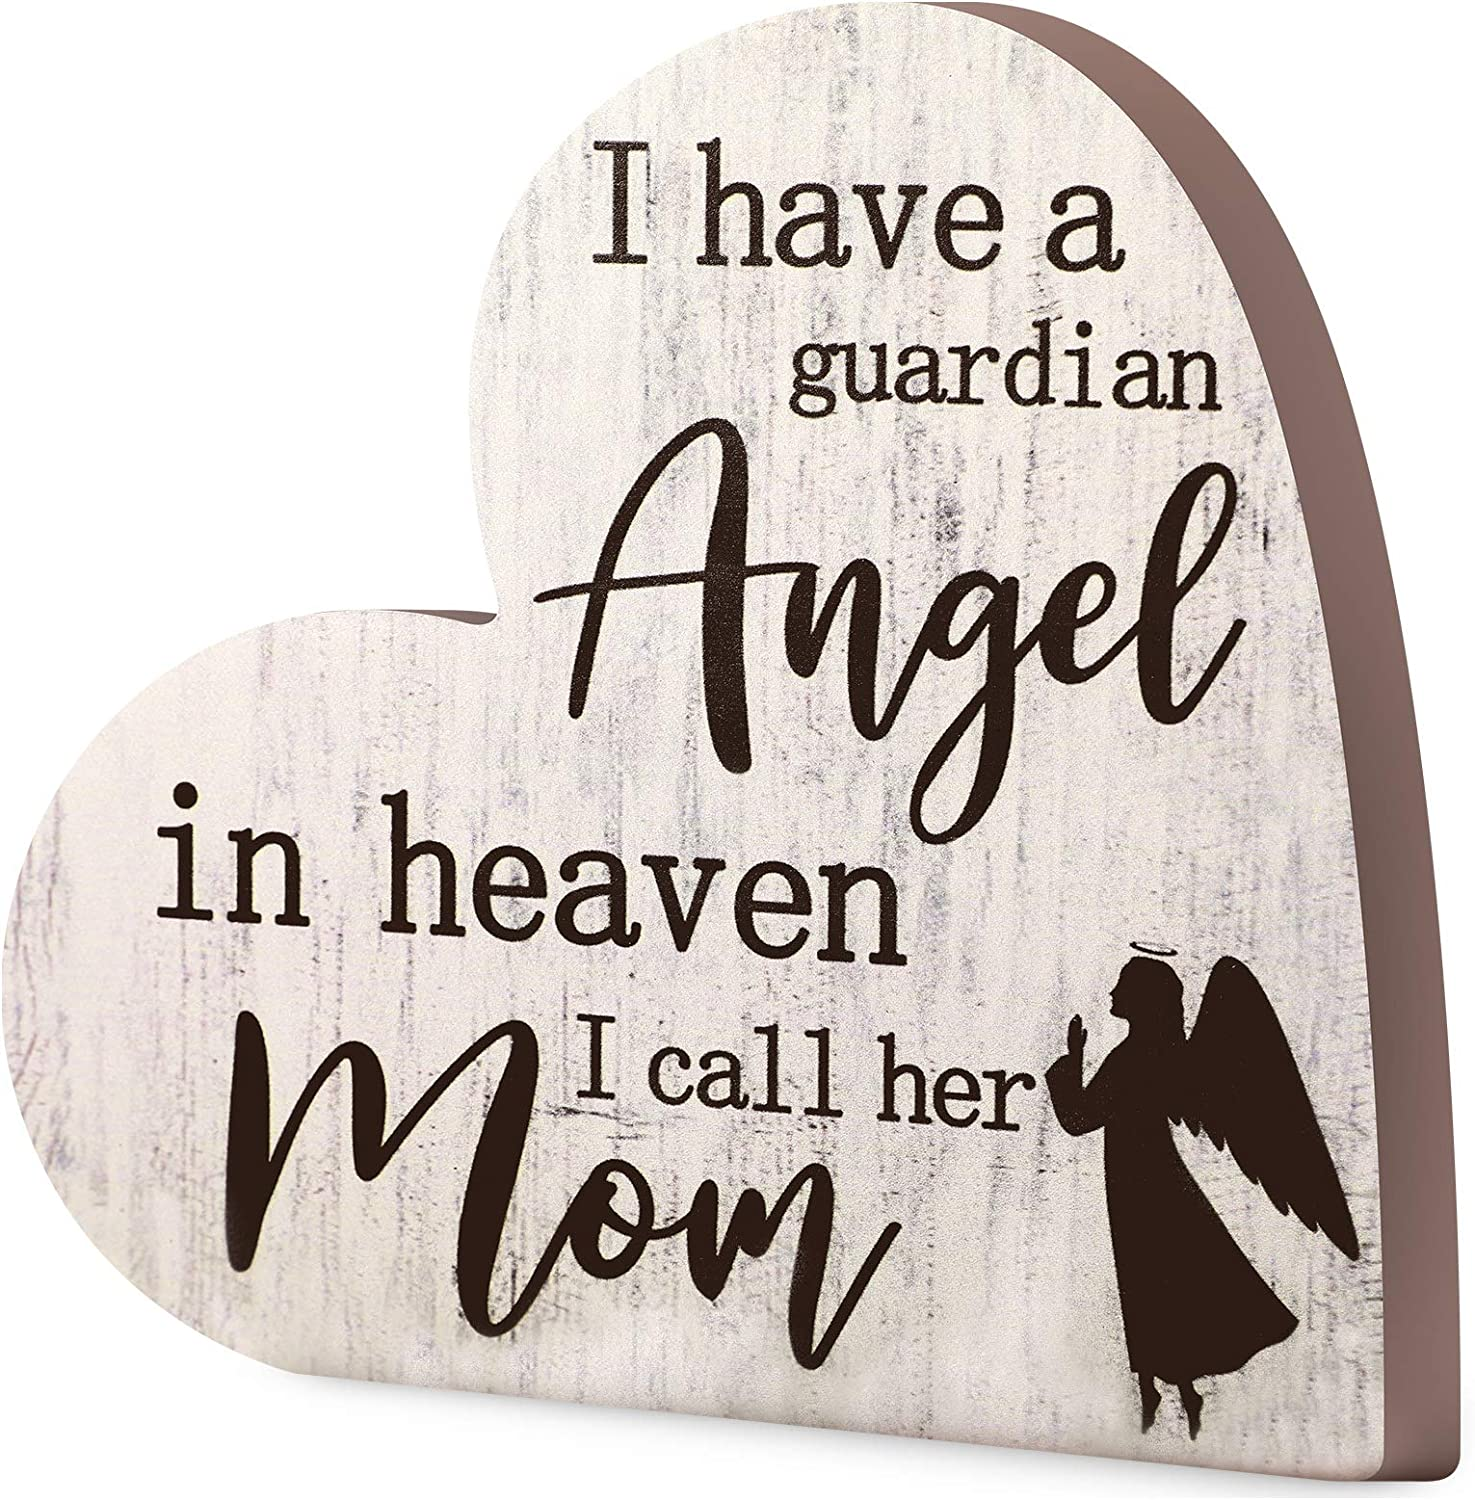 Jetec Bereavement Gift Sympathy Memorial Decor Sign Mother's Day Memorial Sign for Loss of Mother Grief Funeral in Memory of Loved One Condolence Remembrance Sorry for Loss Loving Mom